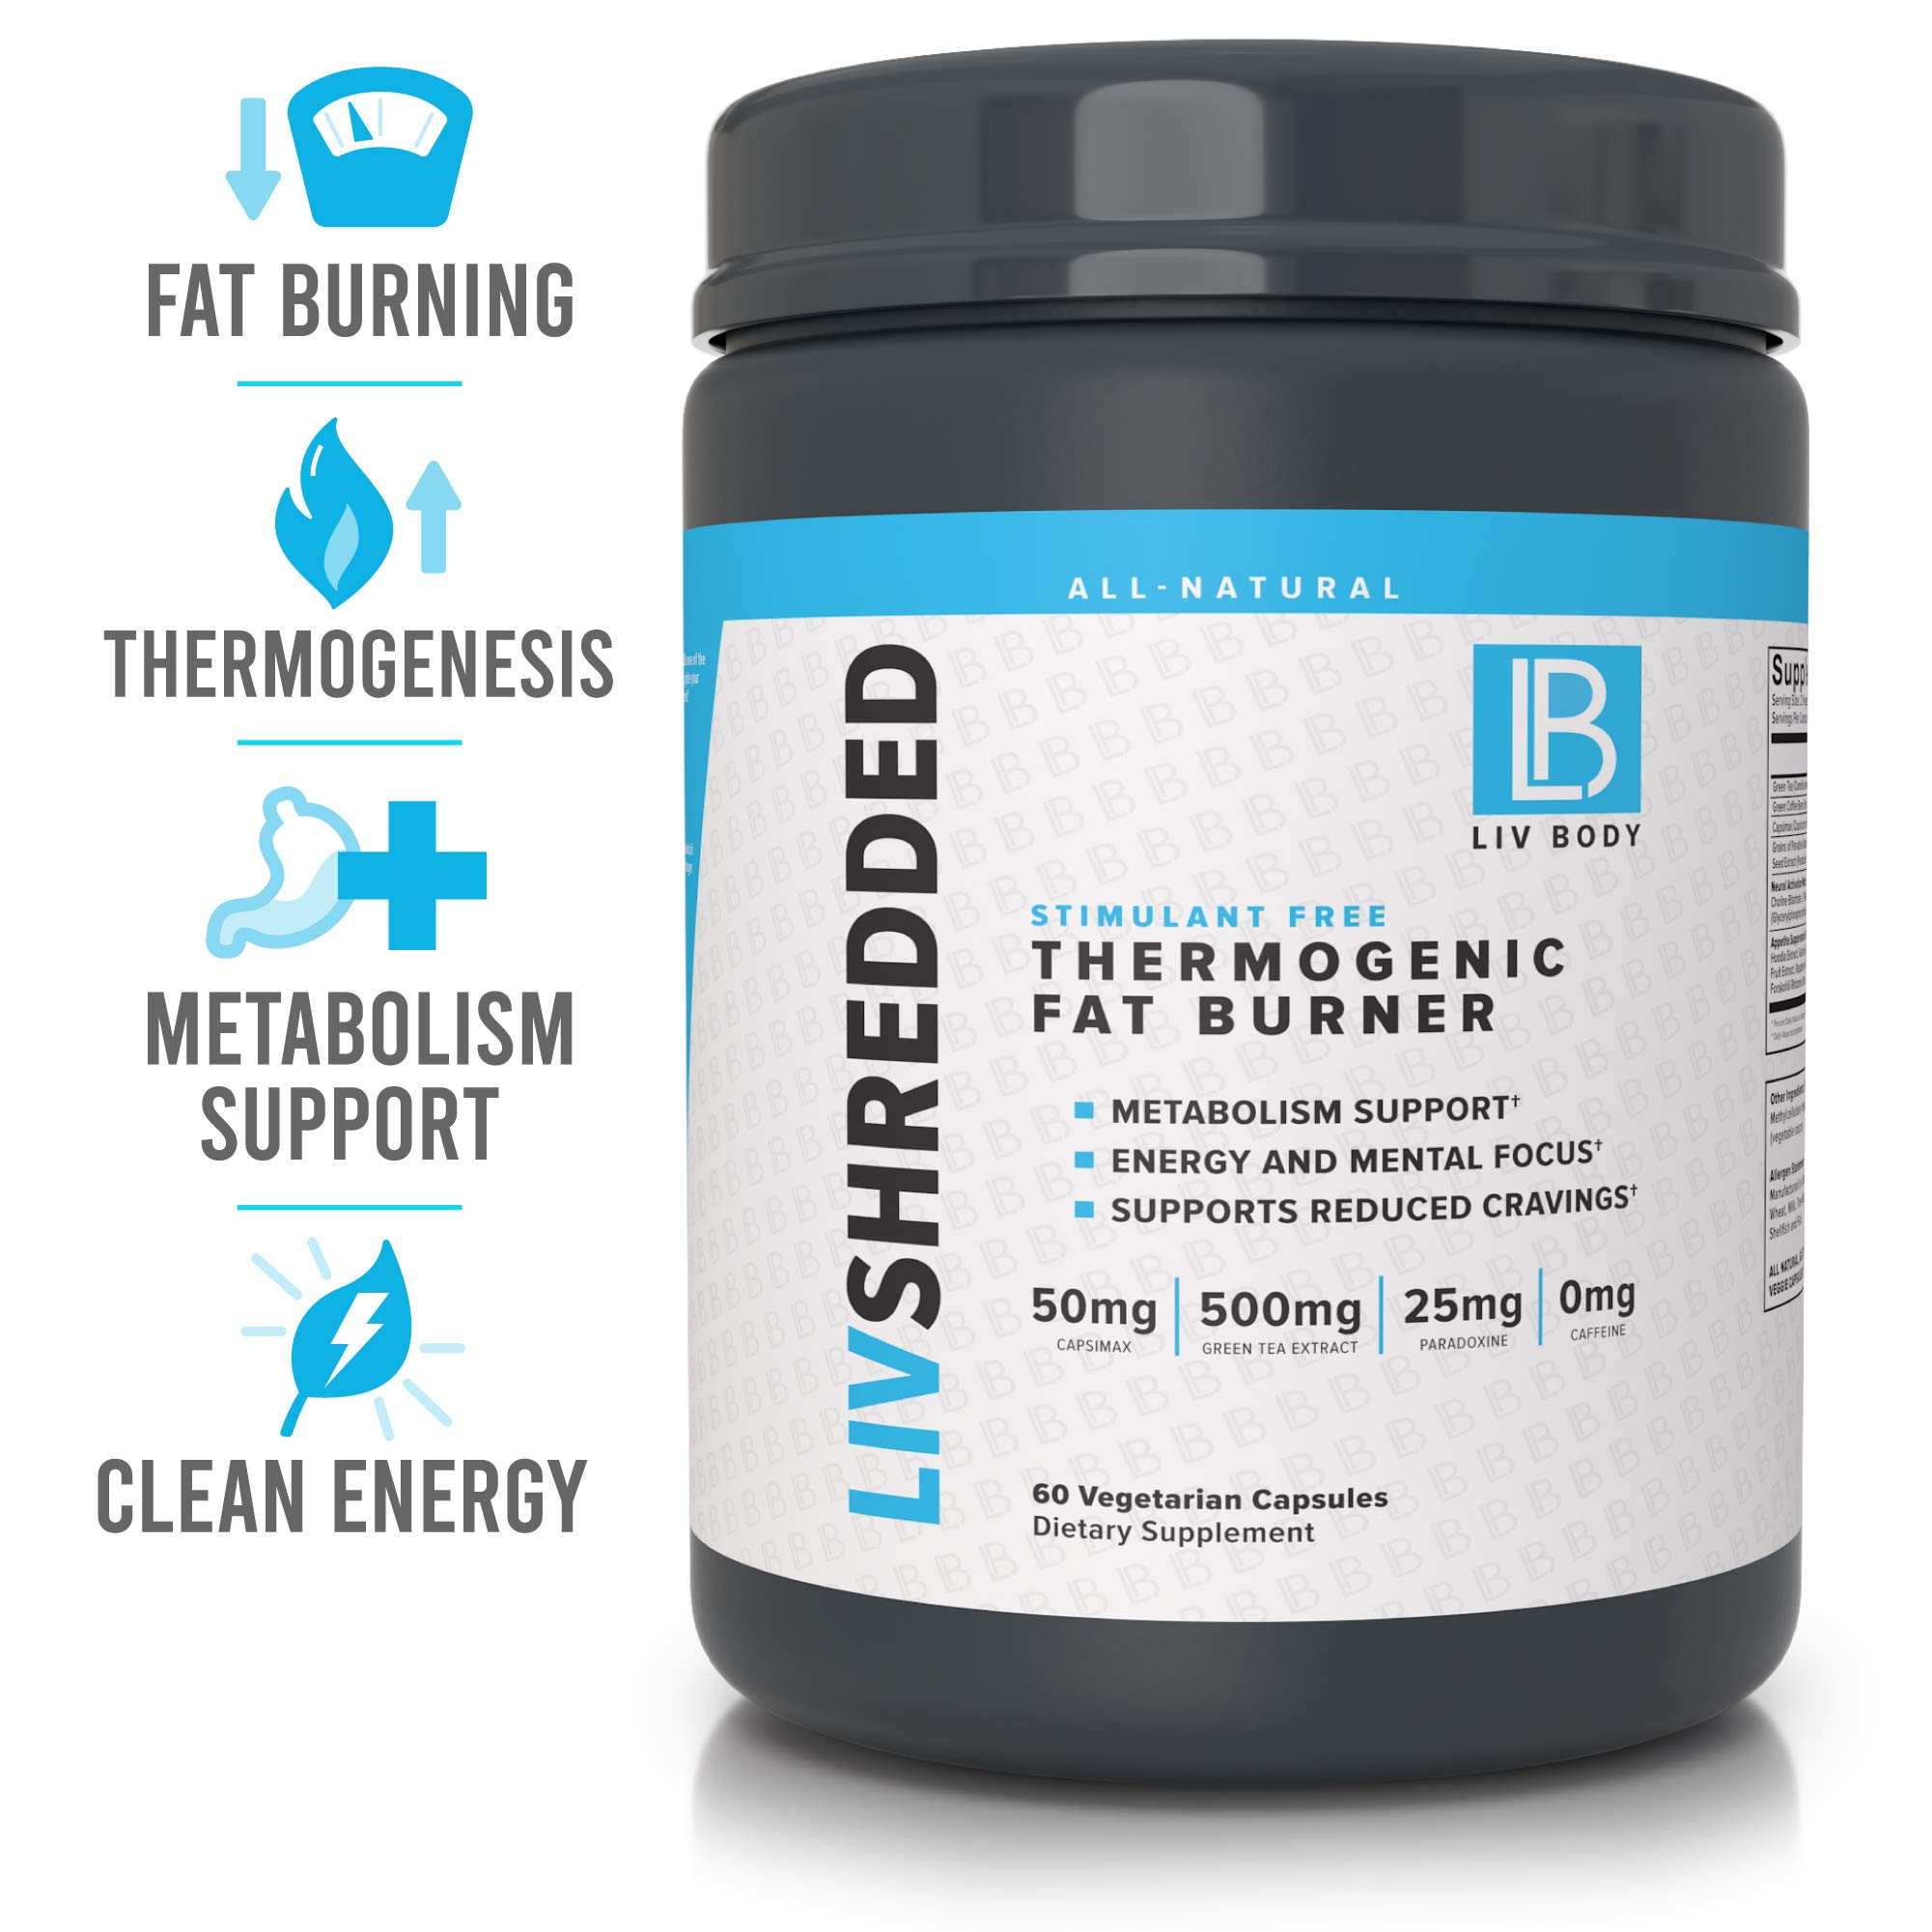 LIV Body | LIV Shredded Stimulant Free Thermogenic Fat Burner | Metabolism Support, Reduces Cravings & Energy and Mental Focus | 60 Vegetarian Capsules by LIV Body